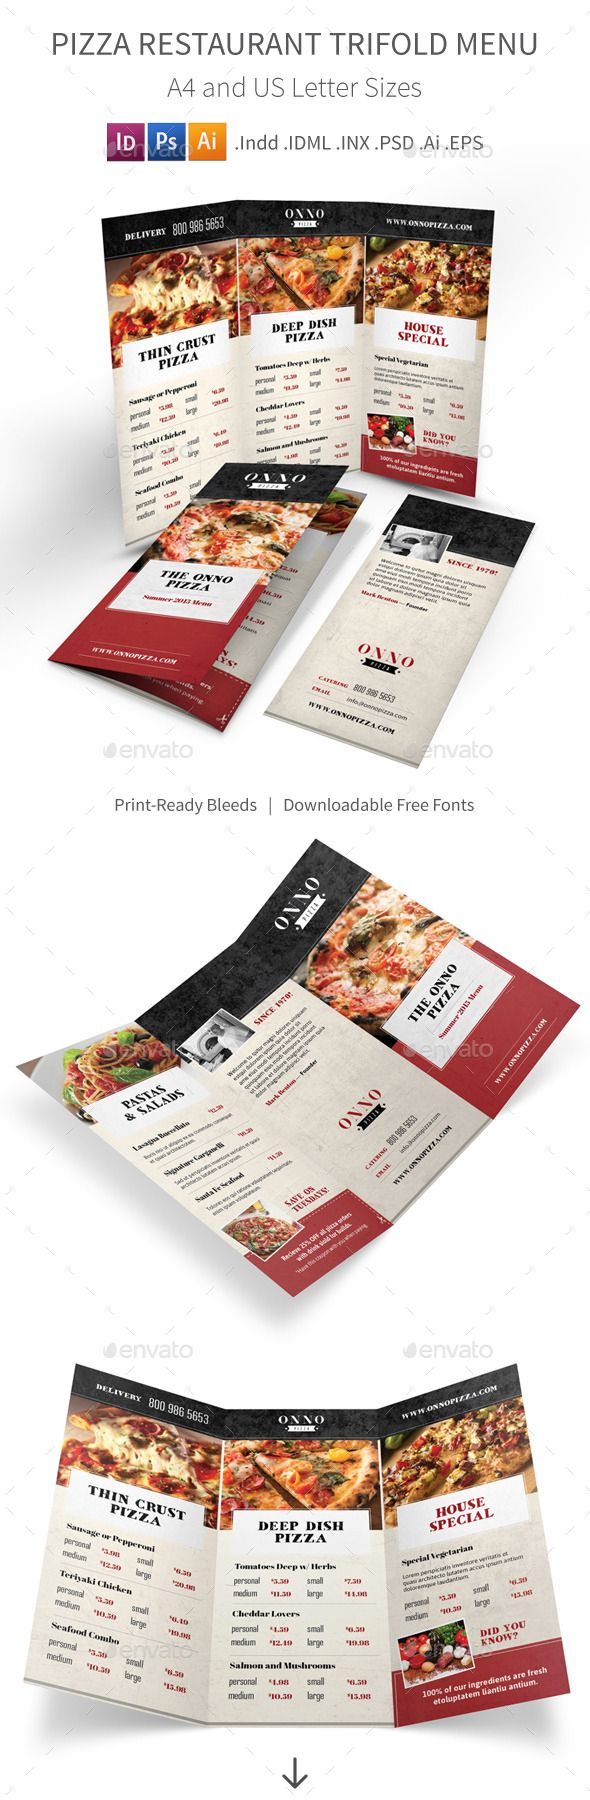 455 best trifold restaurant menu template images on pinterest pizza restaurant trifold menu pronofoot35fo Choice Image